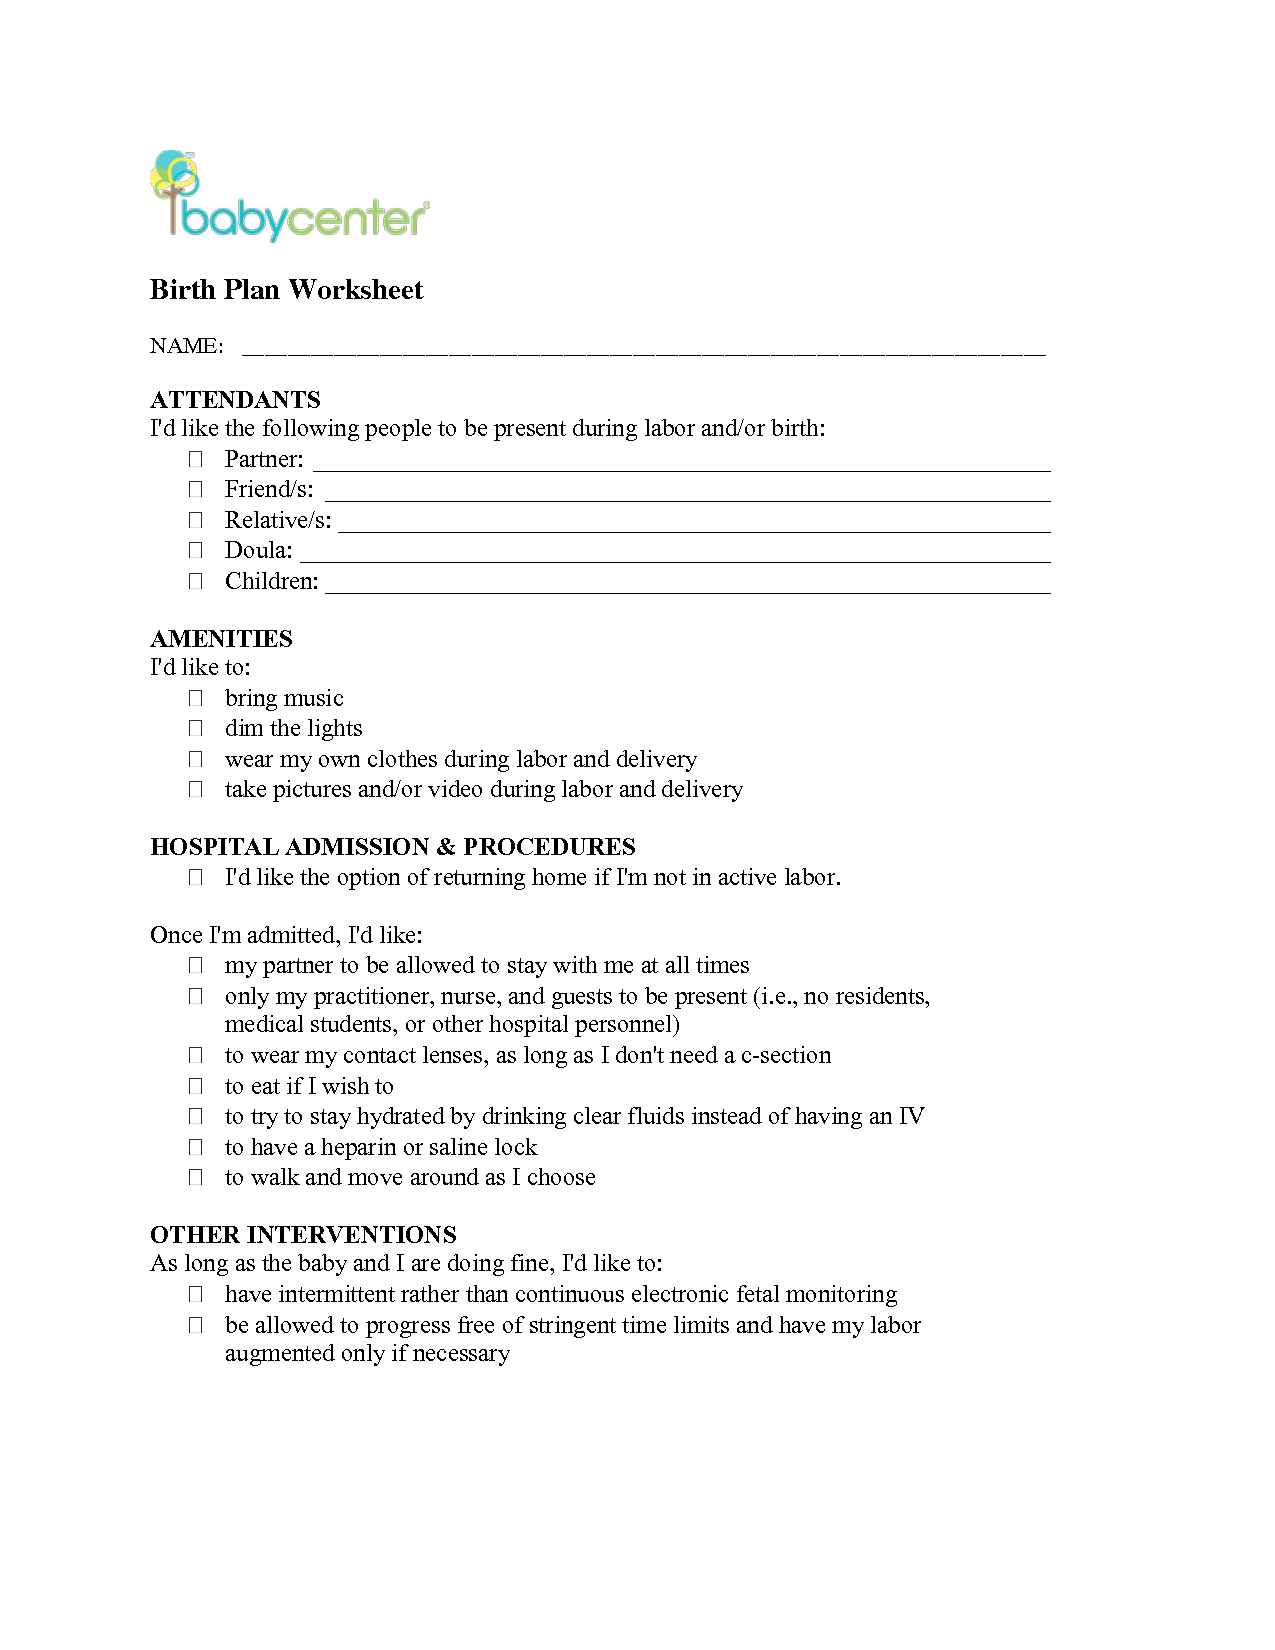 birth plan | Birth Plan Worksheet | baby | Baby, Birth, Baby fever